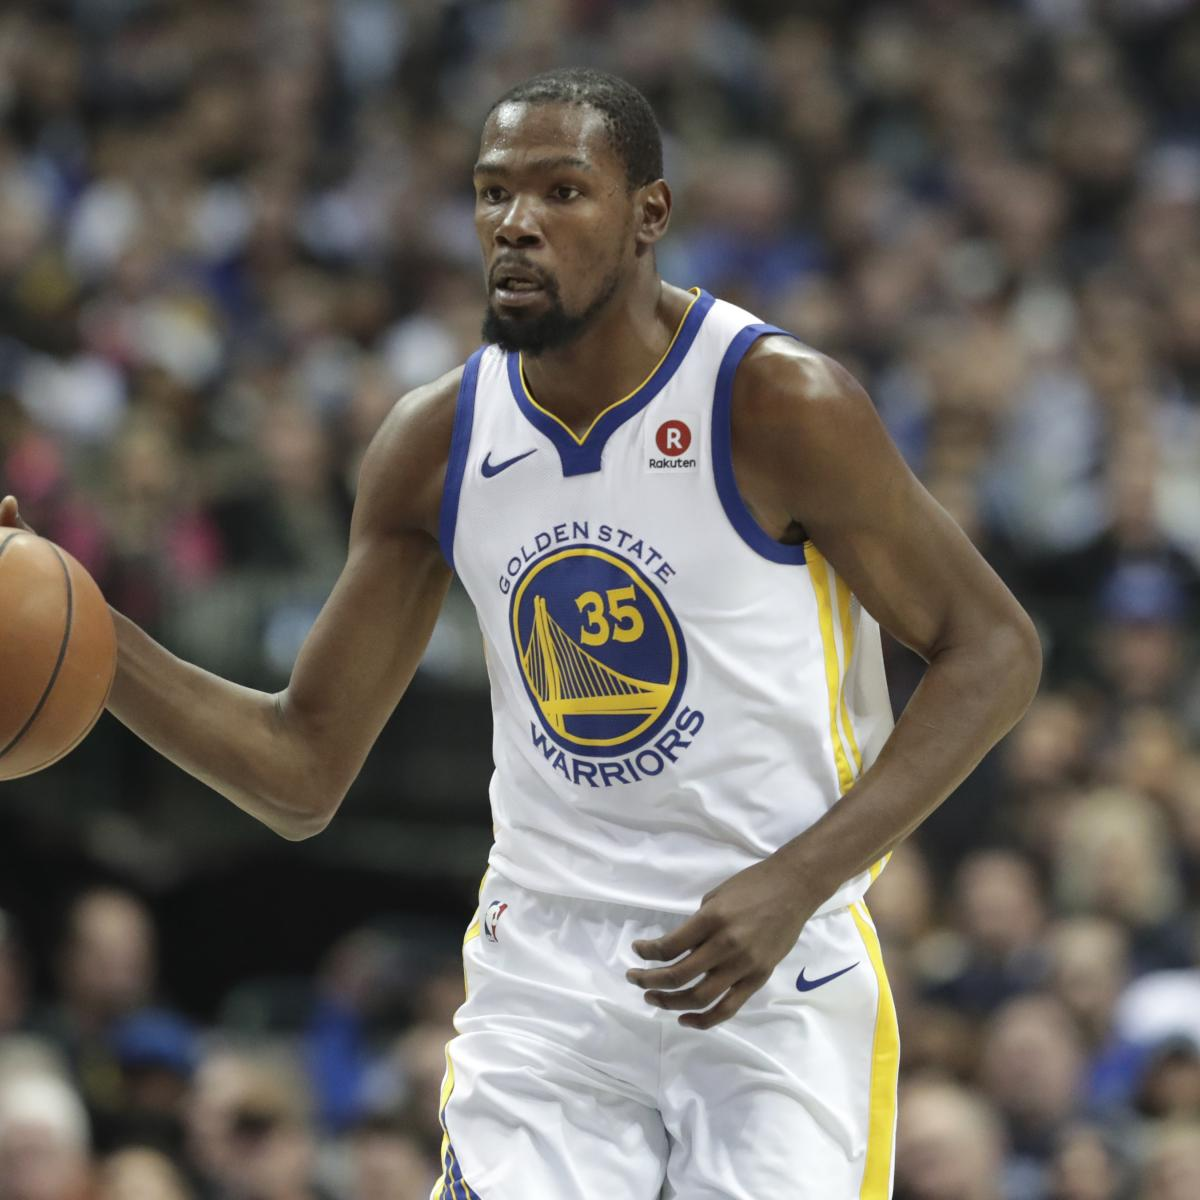 Warriors Come Out To Play Bleacher Report: Kevin Durant Says Warriors Are Focusing On Themselves, Not